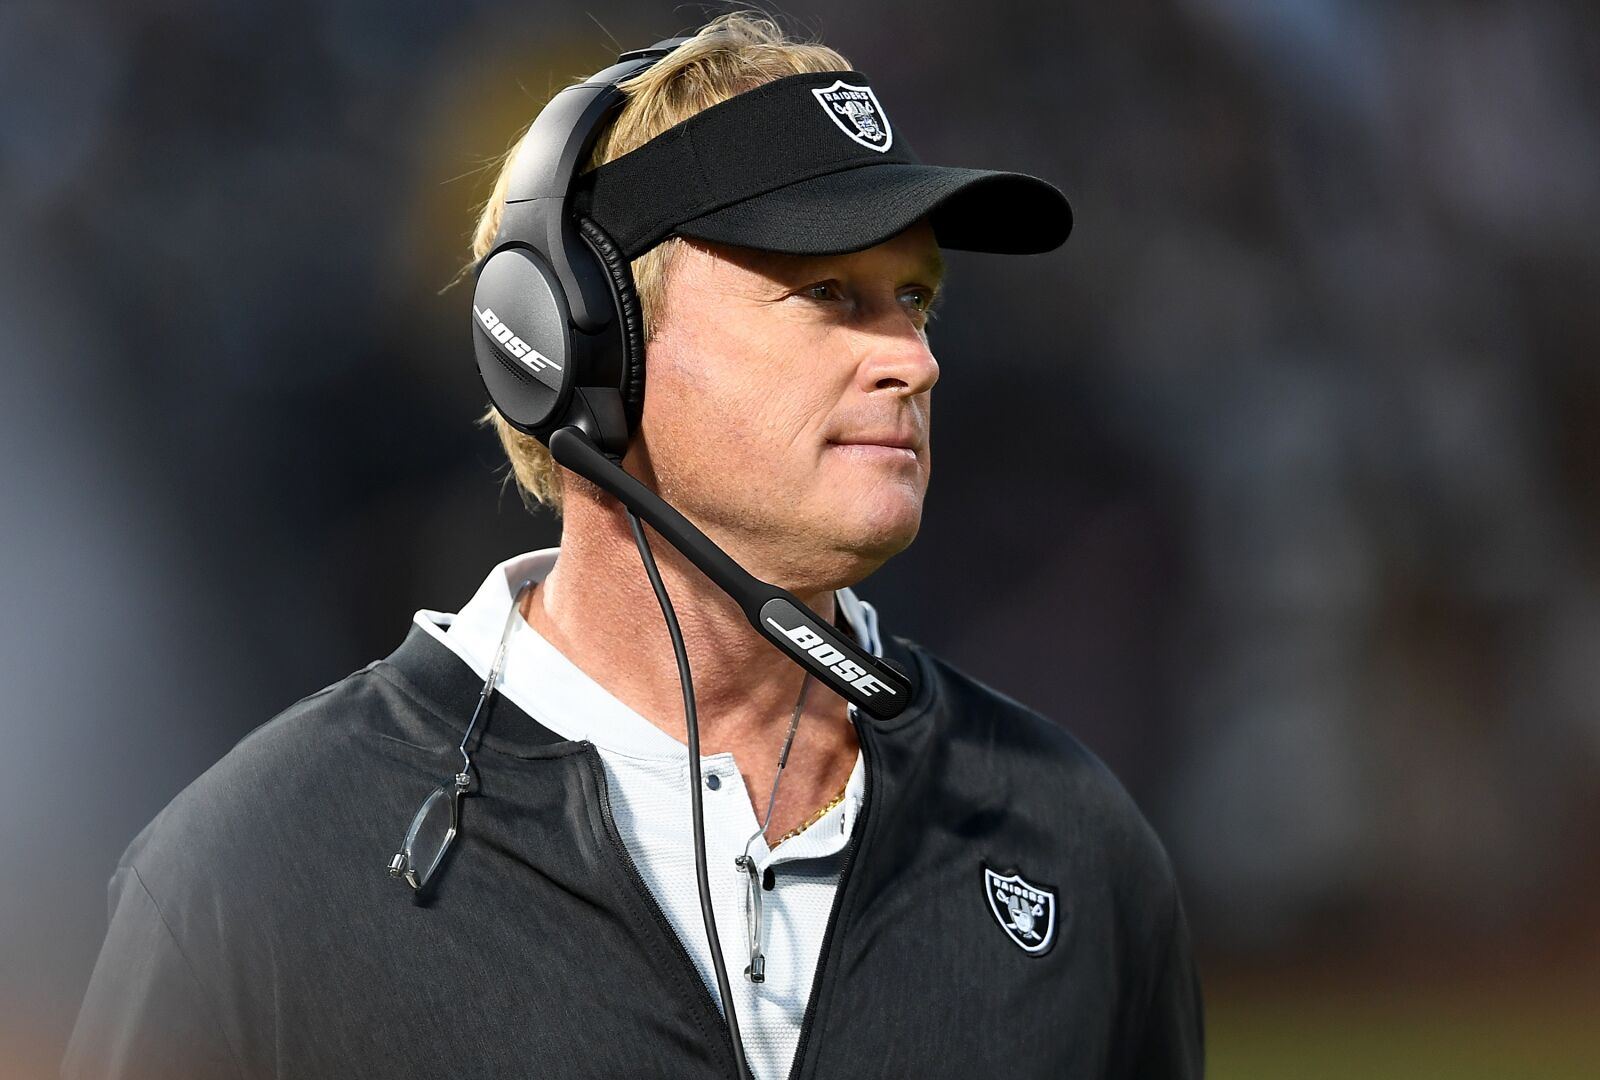 Reviewing the Raiders second official depth chart